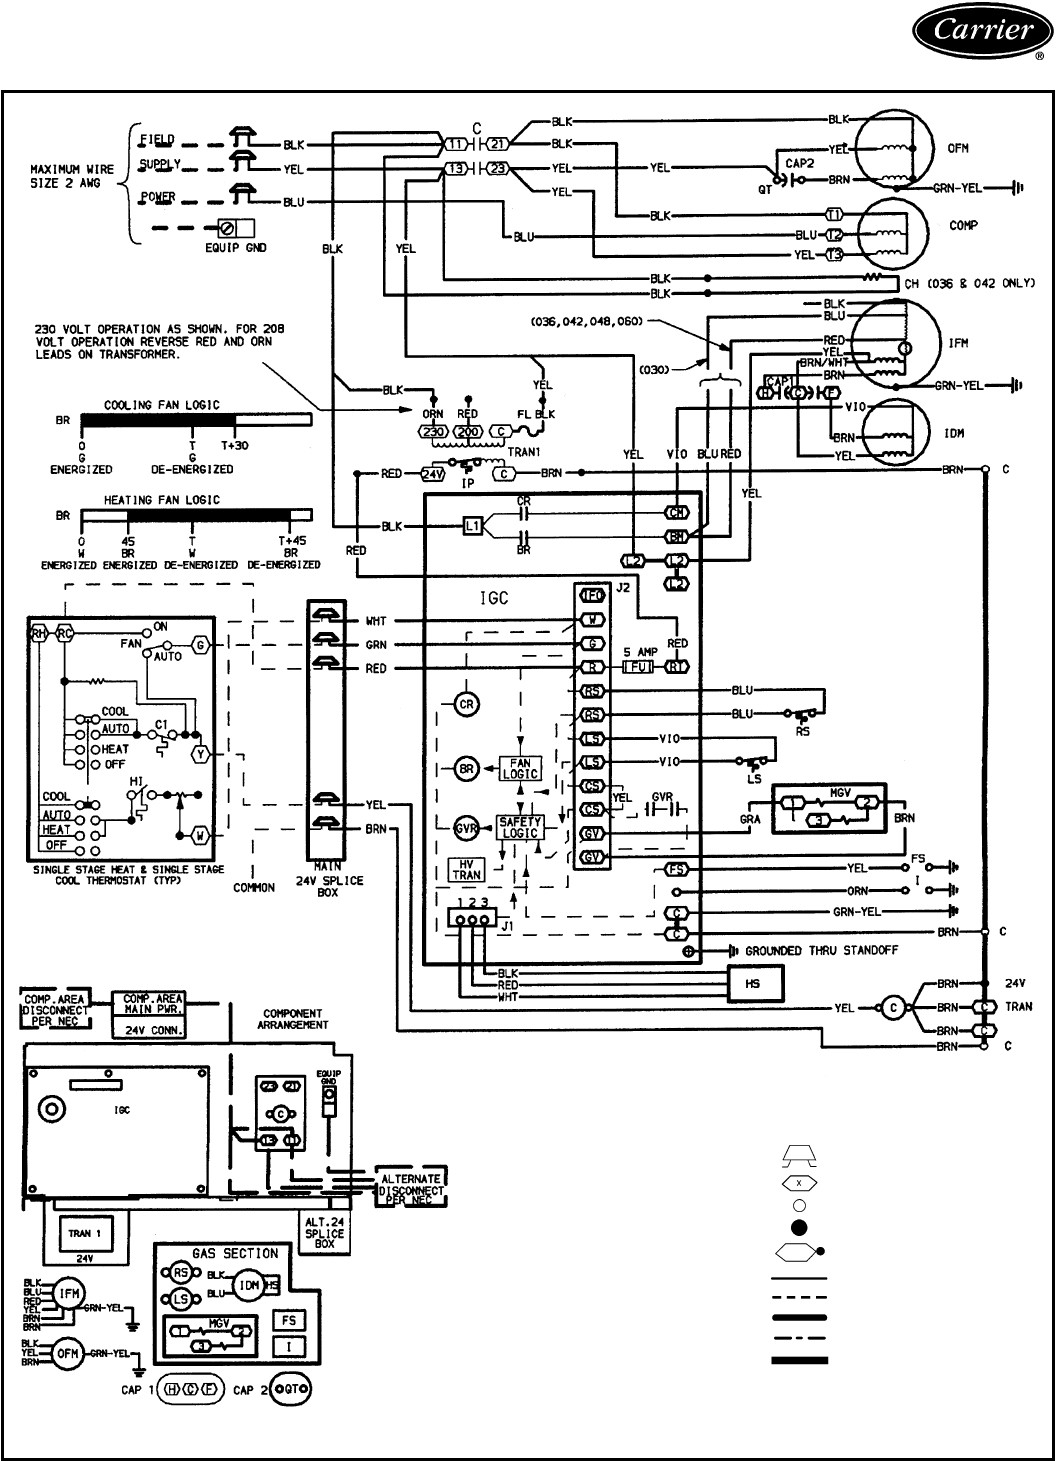 Carrier Infinity 98 Furnace Installation Manual User Guide Manual Tempstar Gas  Furnace Wiring Diagram Carrier 58sta Gas Furnace Wiring Diagram